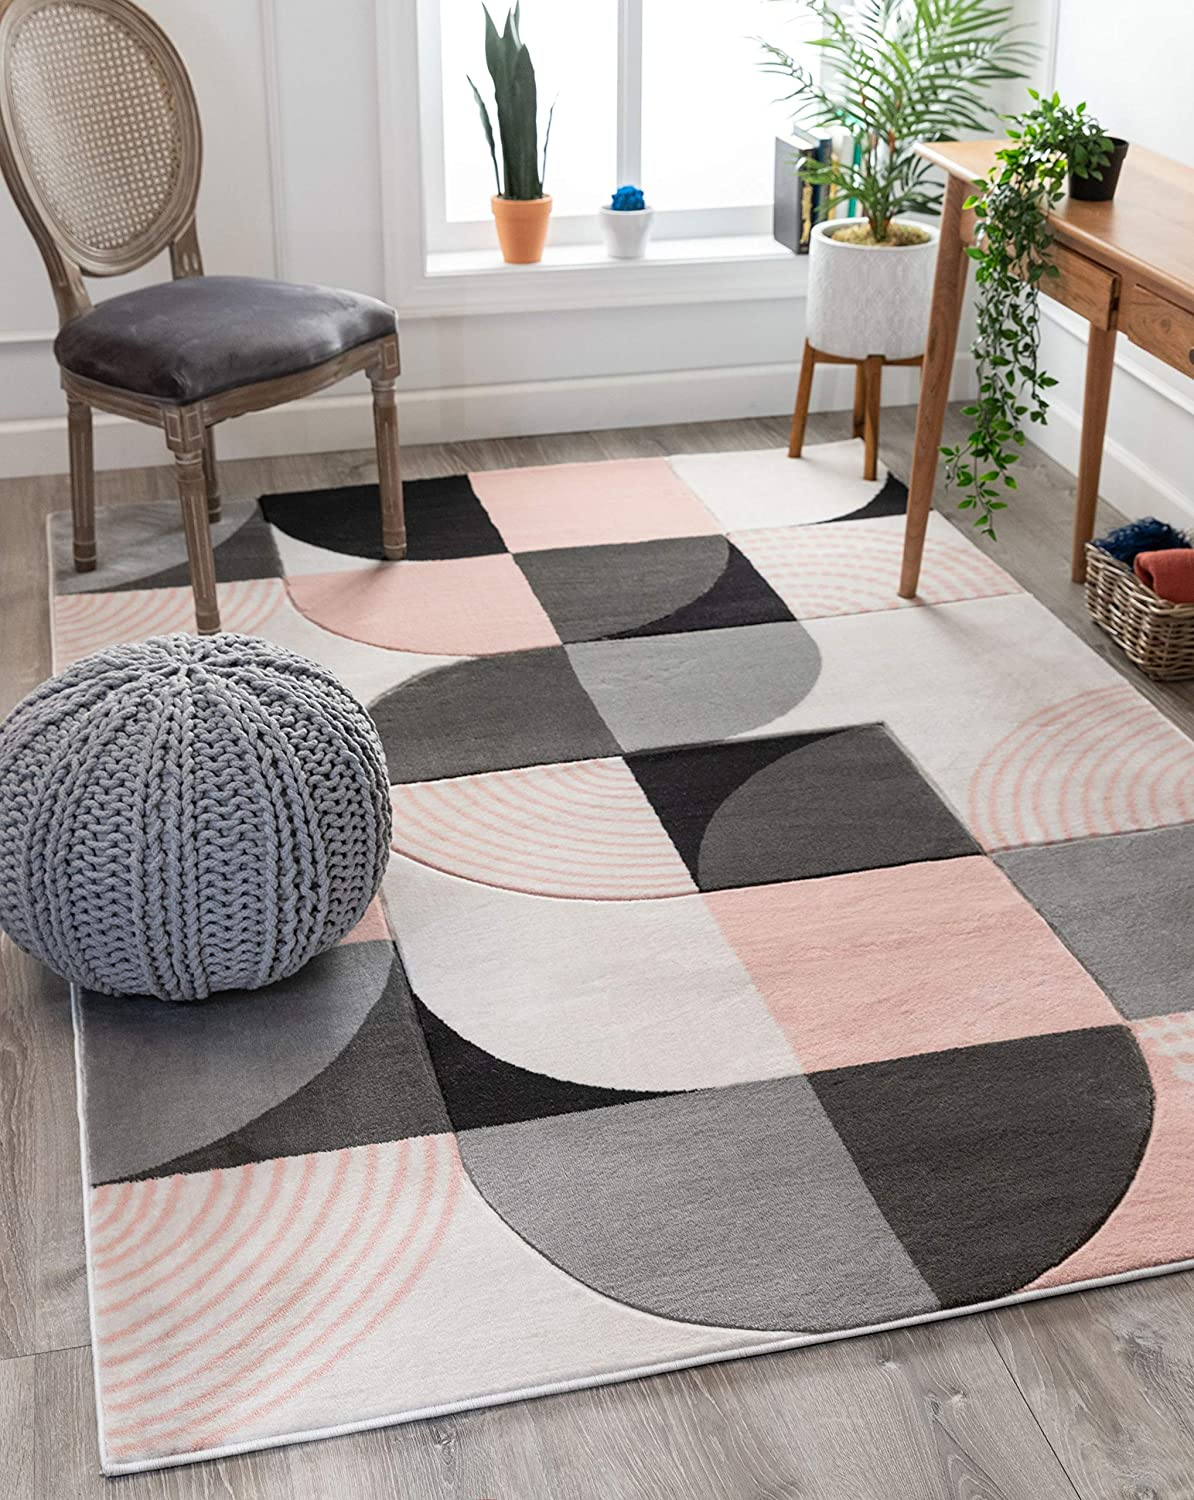 Amazon Com Well Woven Maggie Blush Pink Modern Geometric Dots Boxes Pattern Area Rug 5x7 5 3 X 7 3 Kitchen Dining